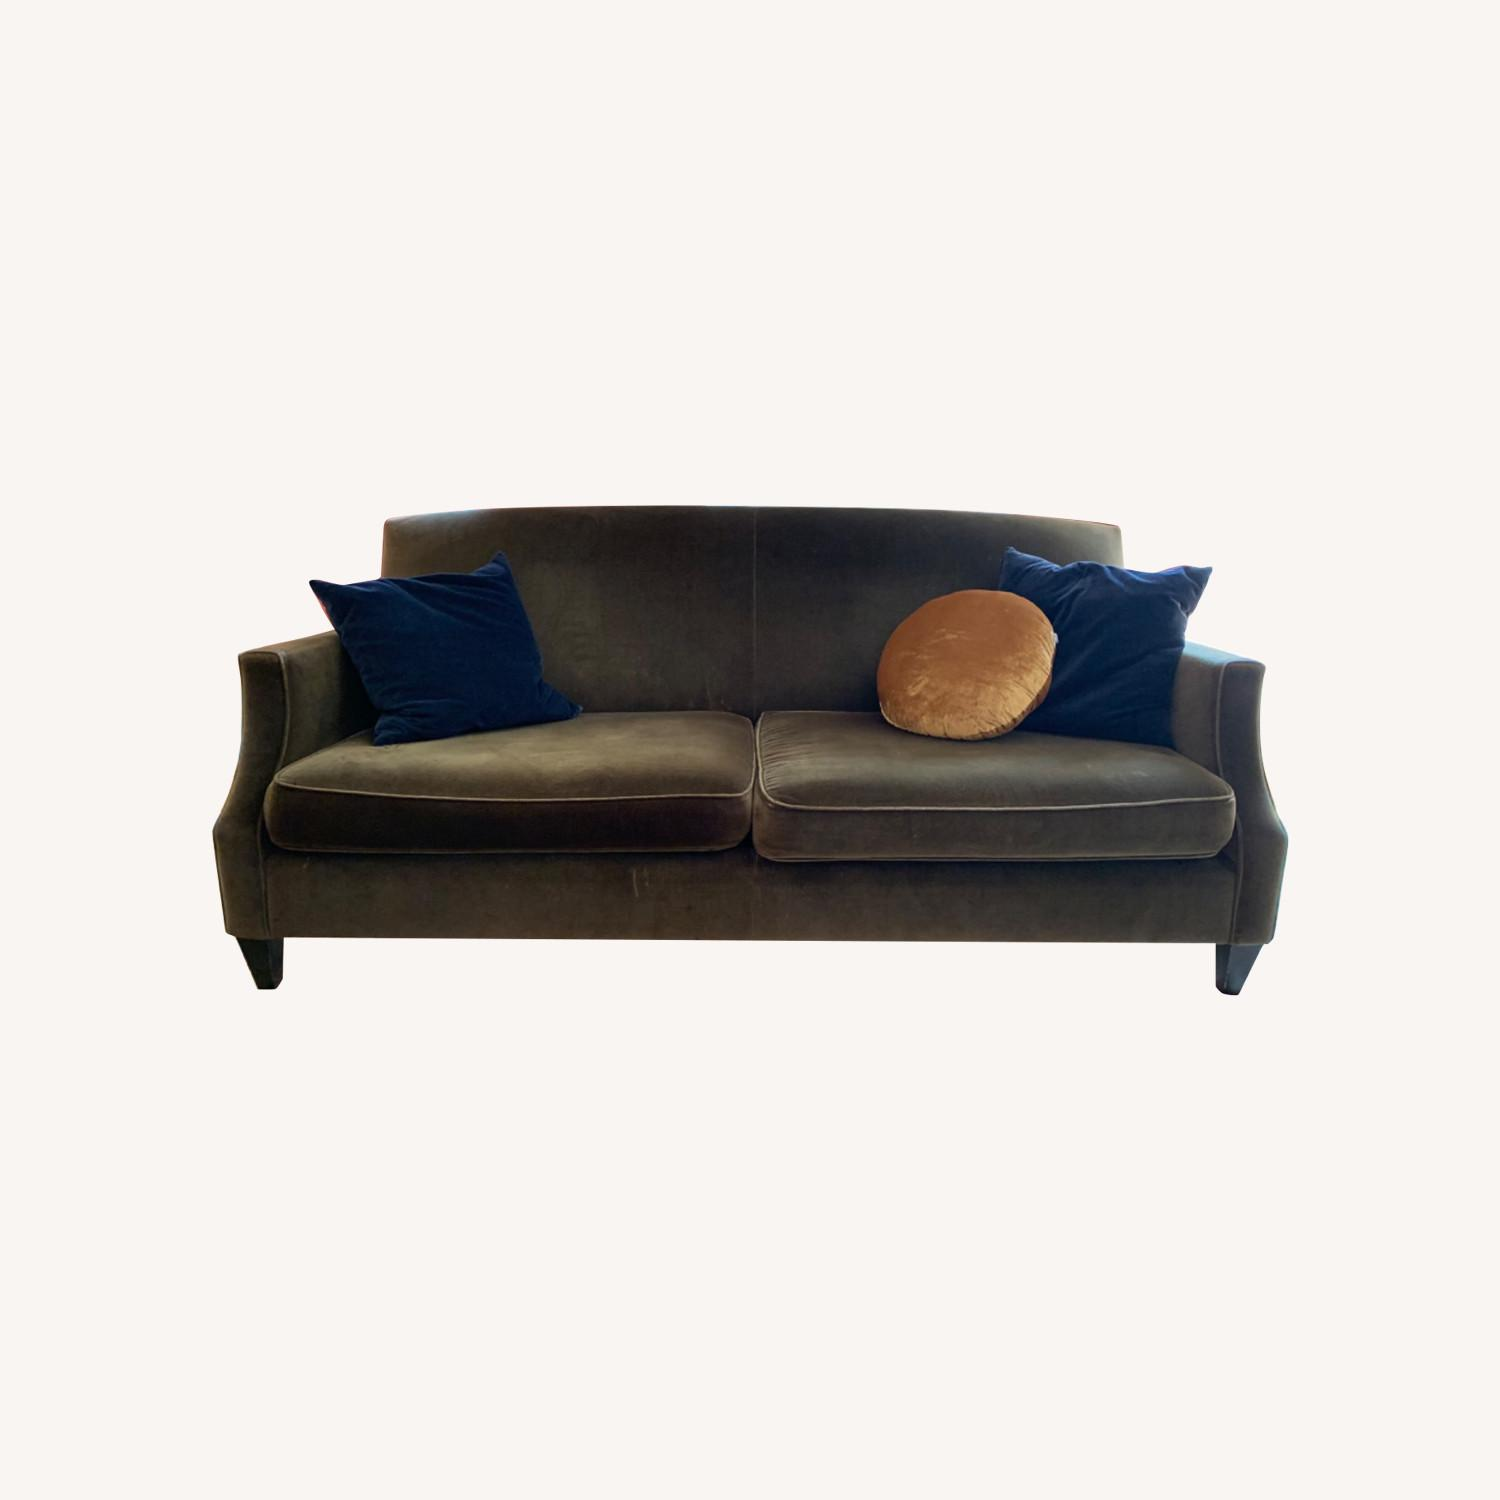 Crate & Barrel Green Velvet Couch - image-0